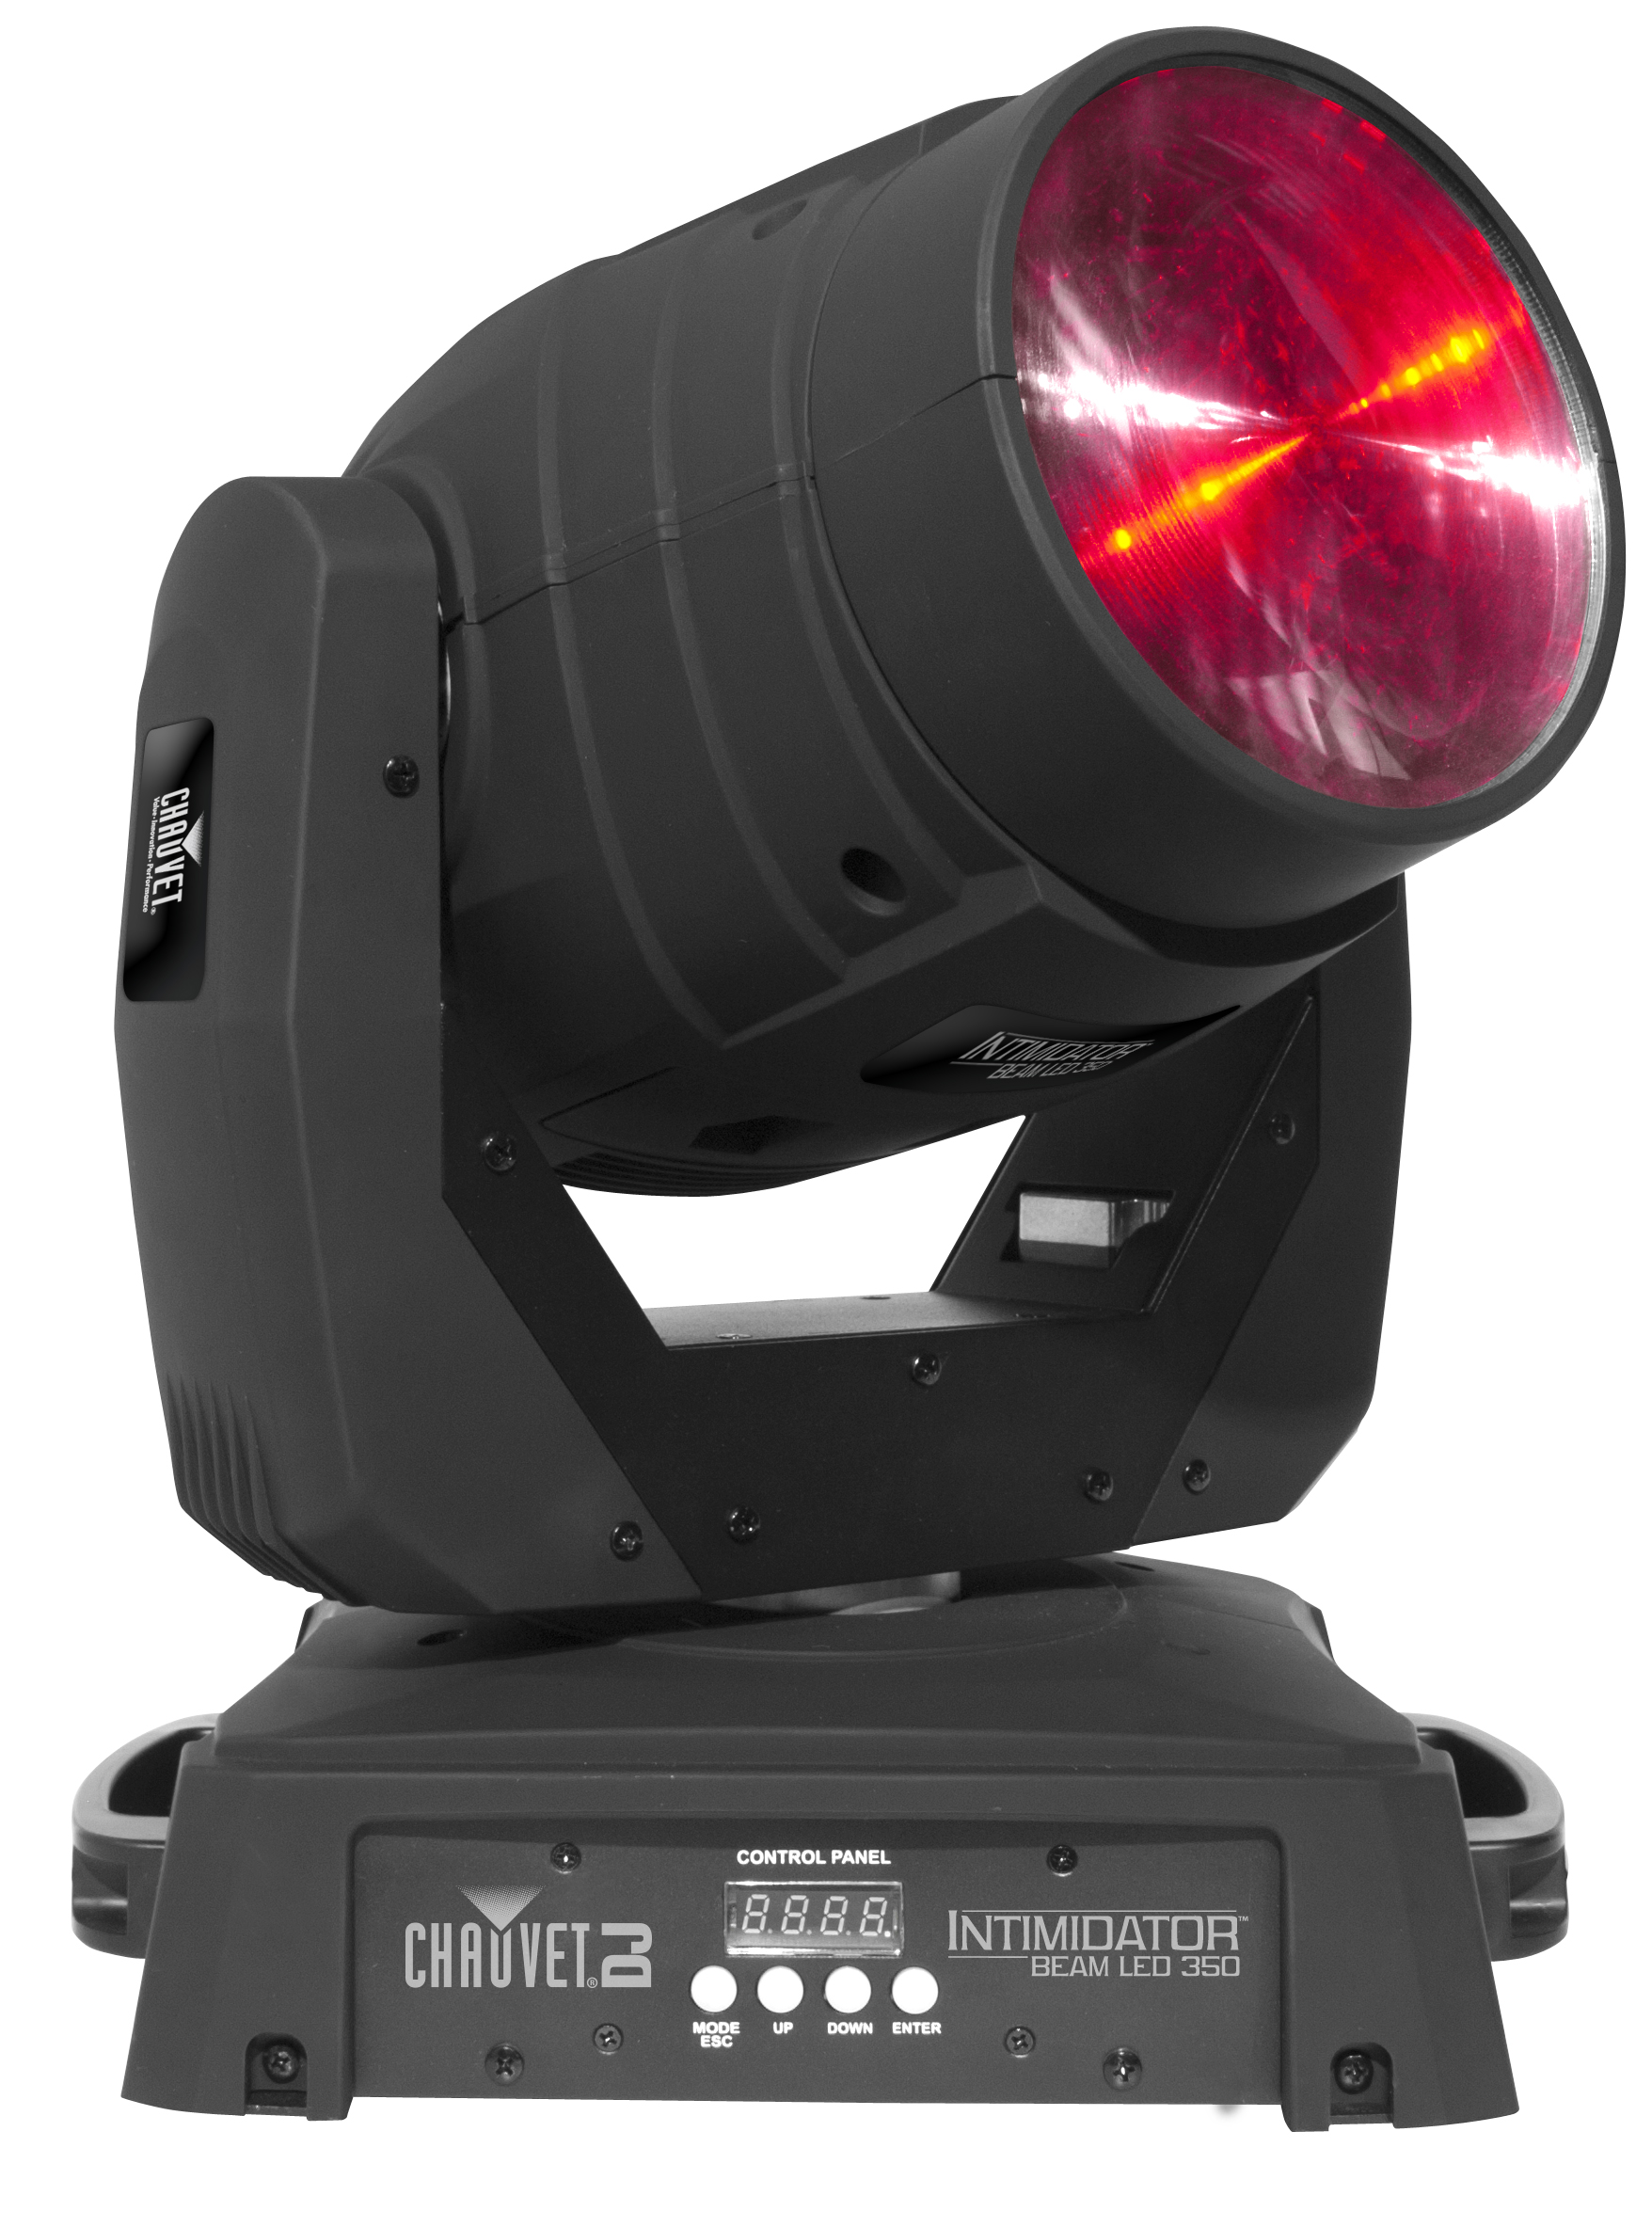 Chauvet Intimidator Beam LED 350 Moving Head Effect Light